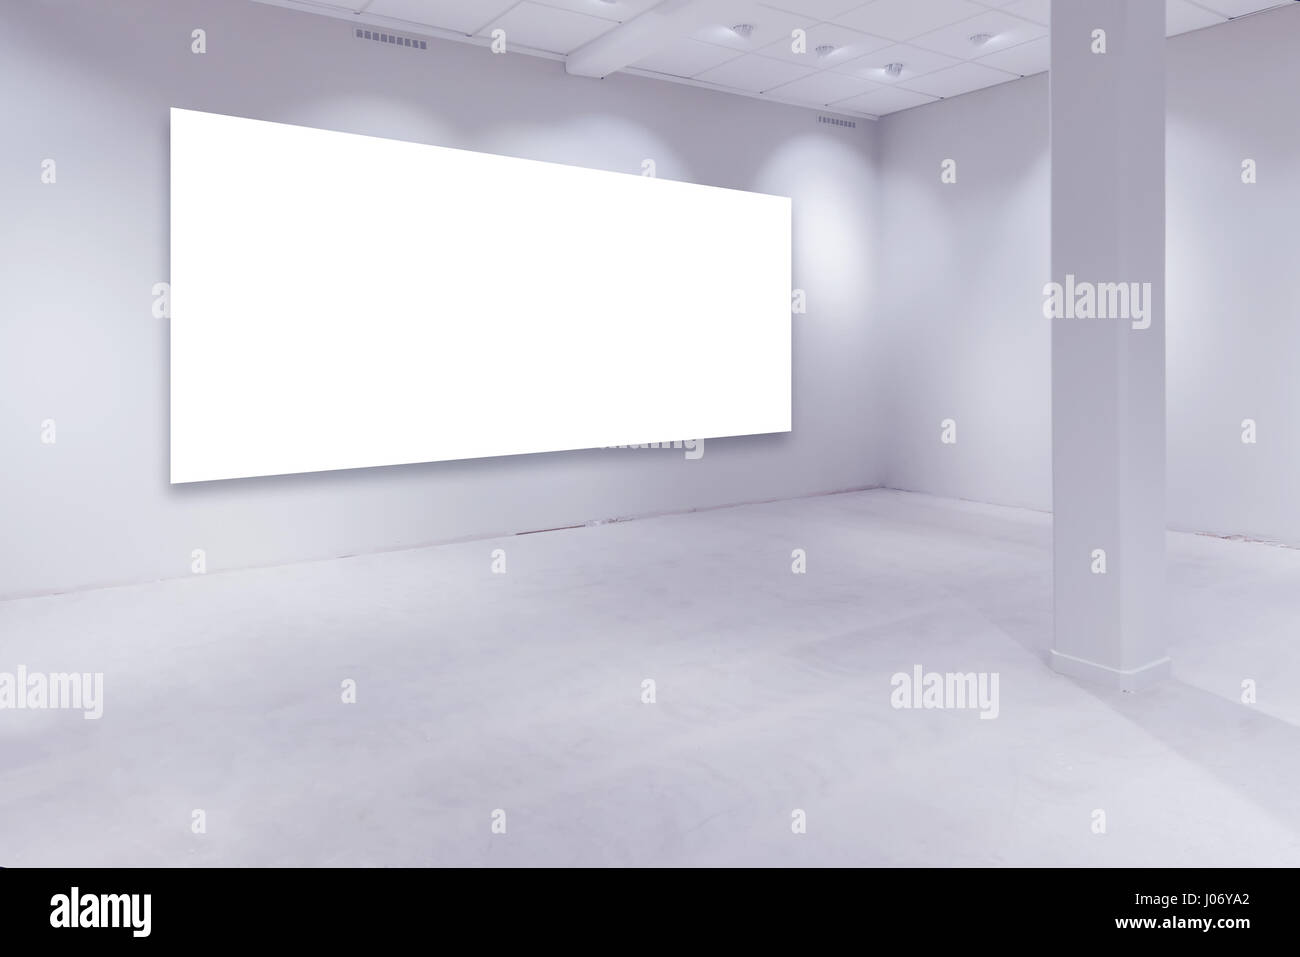 Spot lights and empty white copy space on art gallery wall for painting or photograph - Stock Image